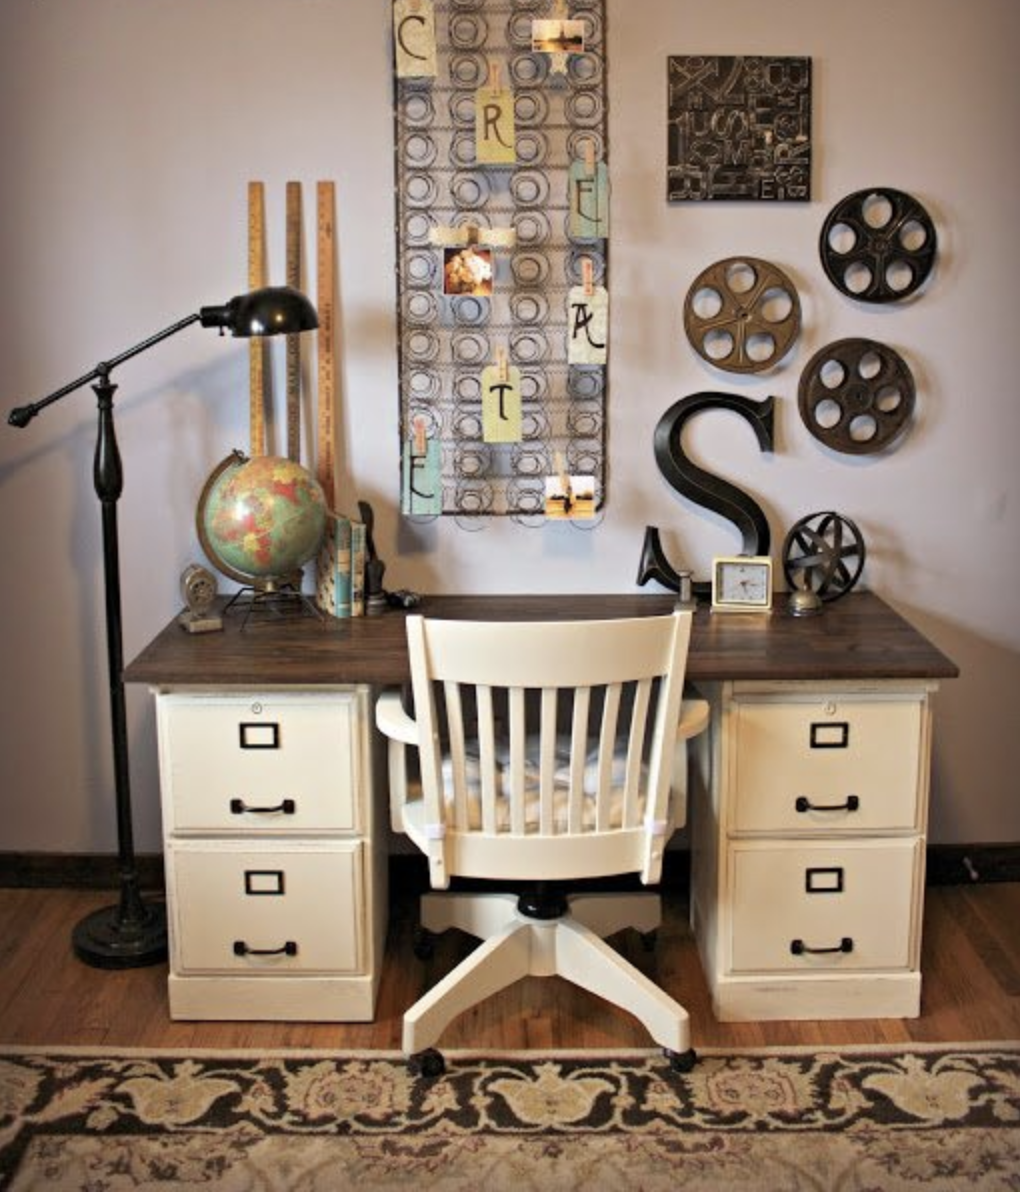 Thought about ways to use old office furniture? You can repurpose old office furniture into other amazing furniture transformations! Check out all the ideas, plus find out how to start upcycling furniture the easiest way possible. There's a guide plus a few other posts with incredible furniture makeovers to peruse which you decide what to do with your furniture. upcycling is also a great way to save money & be environmentally friendly! (No epoxy, no spray paint or VOC's please!) #furniture